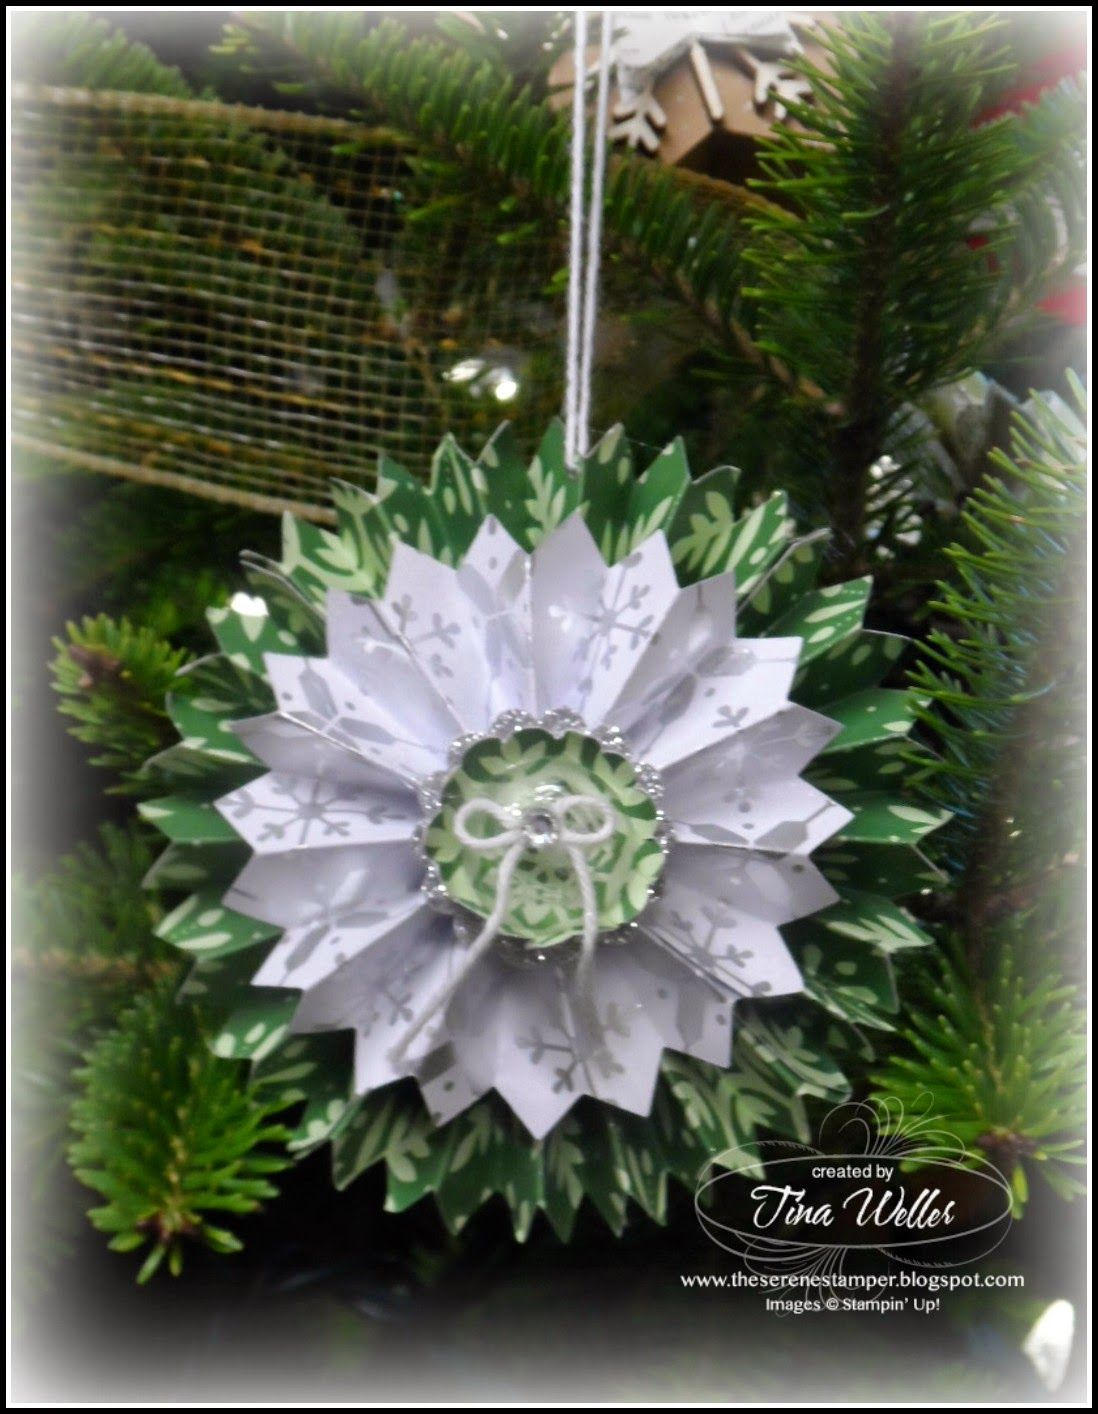 Pin by laurie kirkish on stampinu up christmas pinterest